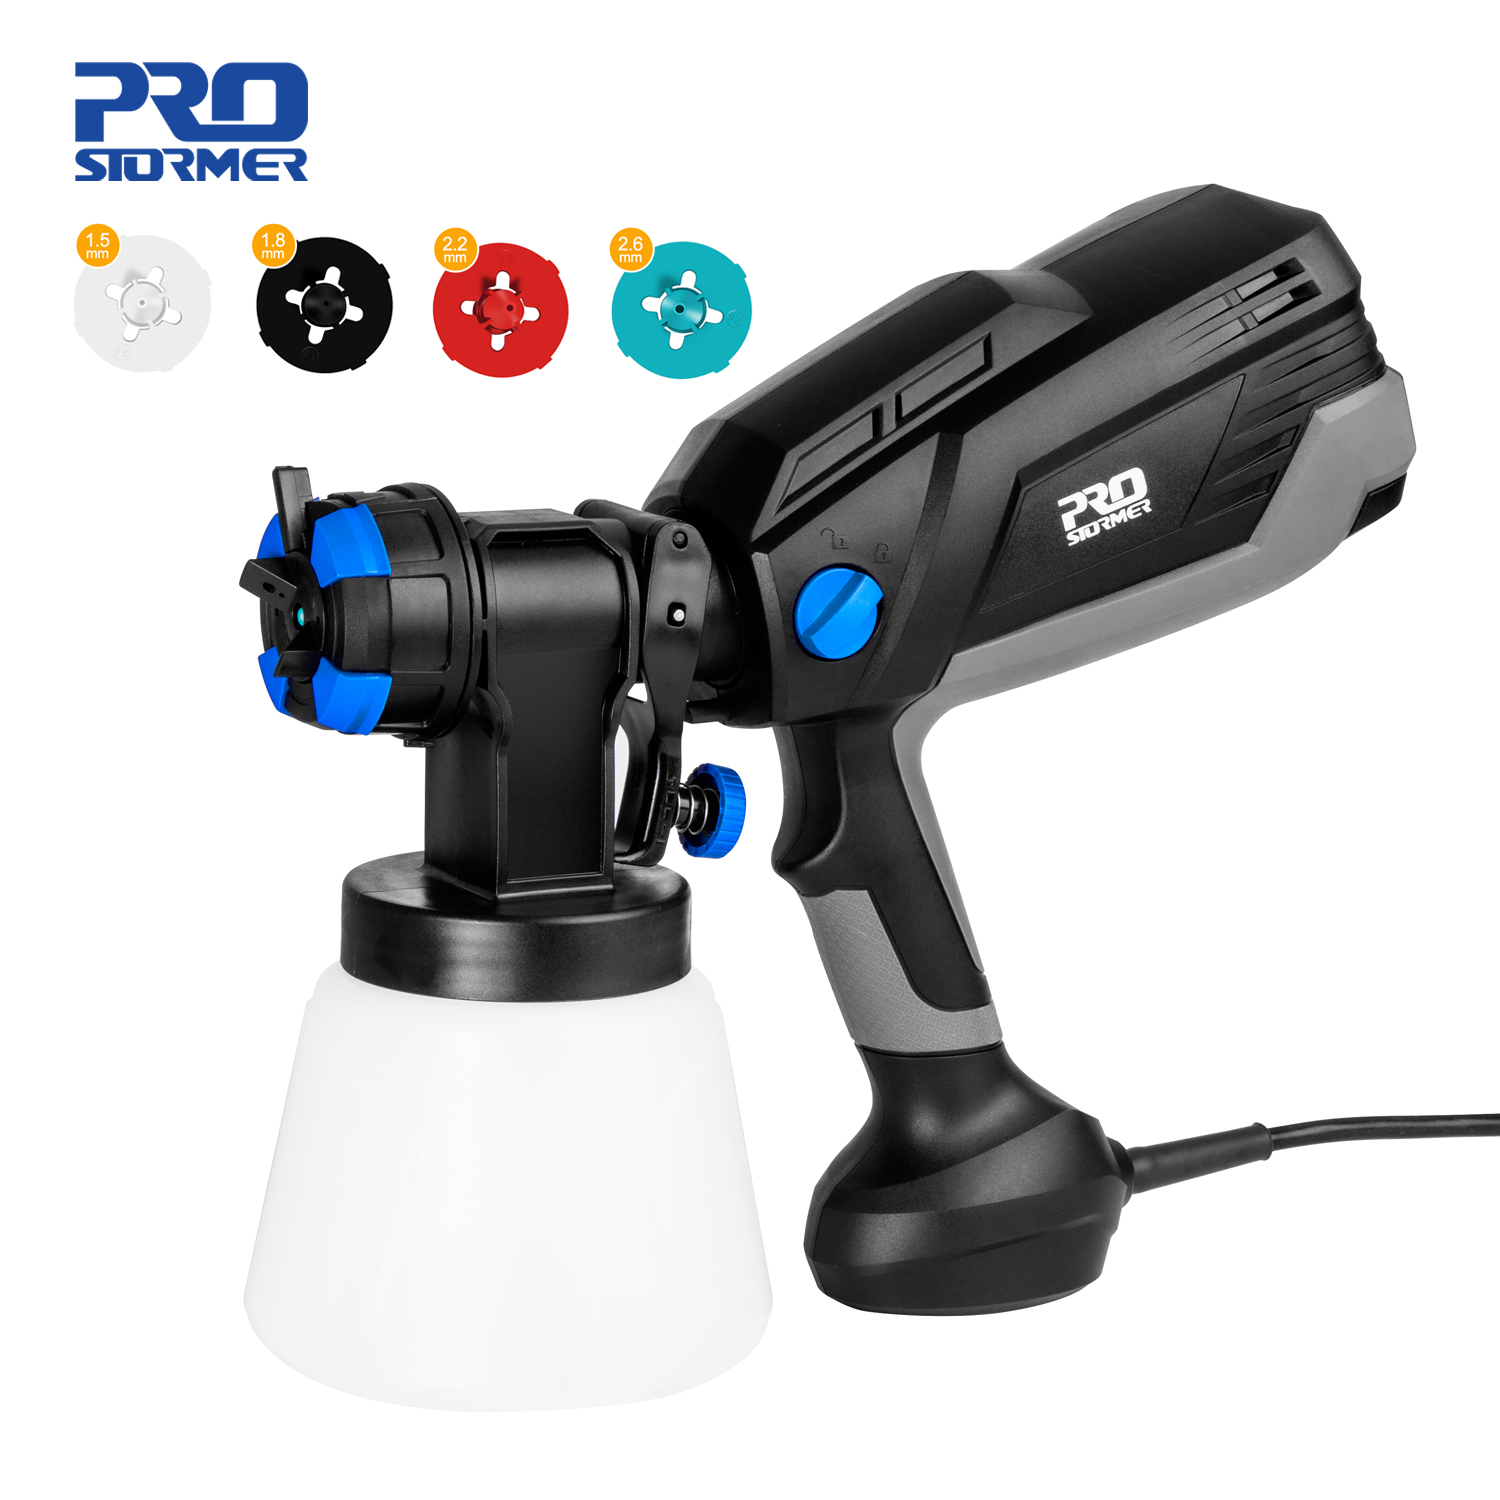 600W Electric Spray Gun 4 Nozzle Sizes 1000ml HVLP Household Paint Sprayer Flow Control Airbrush Easy Spraying by PROSTORMER|Spray Guns|   - AliExpress